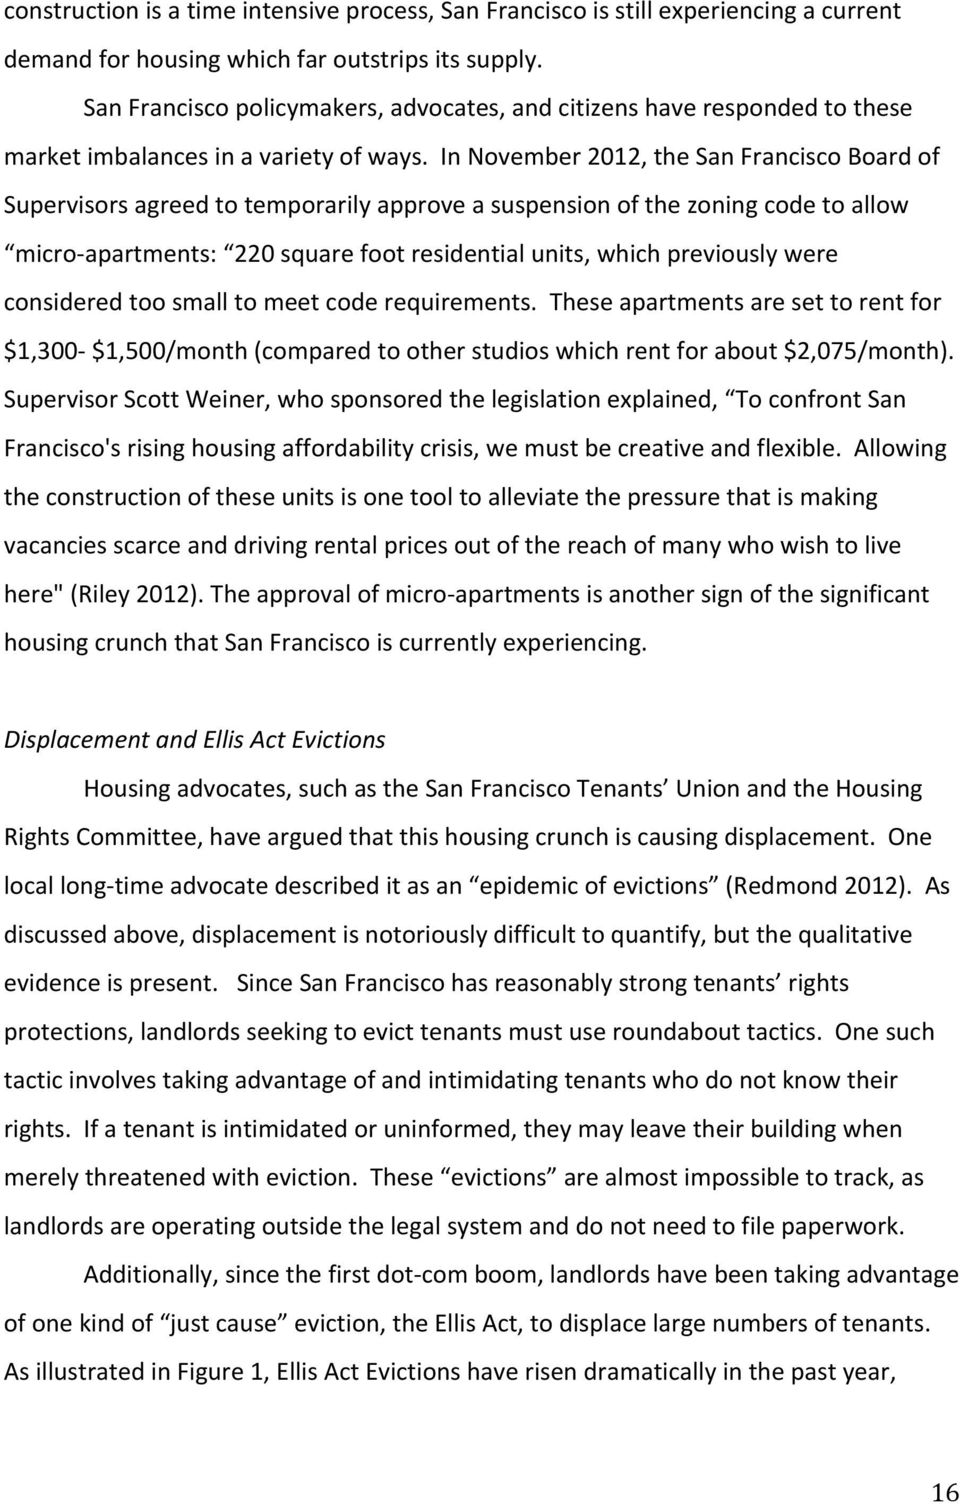 In November 2012, the San Francisco Board of Supervisors agreed to temporarily approve a suspension of the zoning code to allow micro- apartments: 220 square foot residential units, which previously